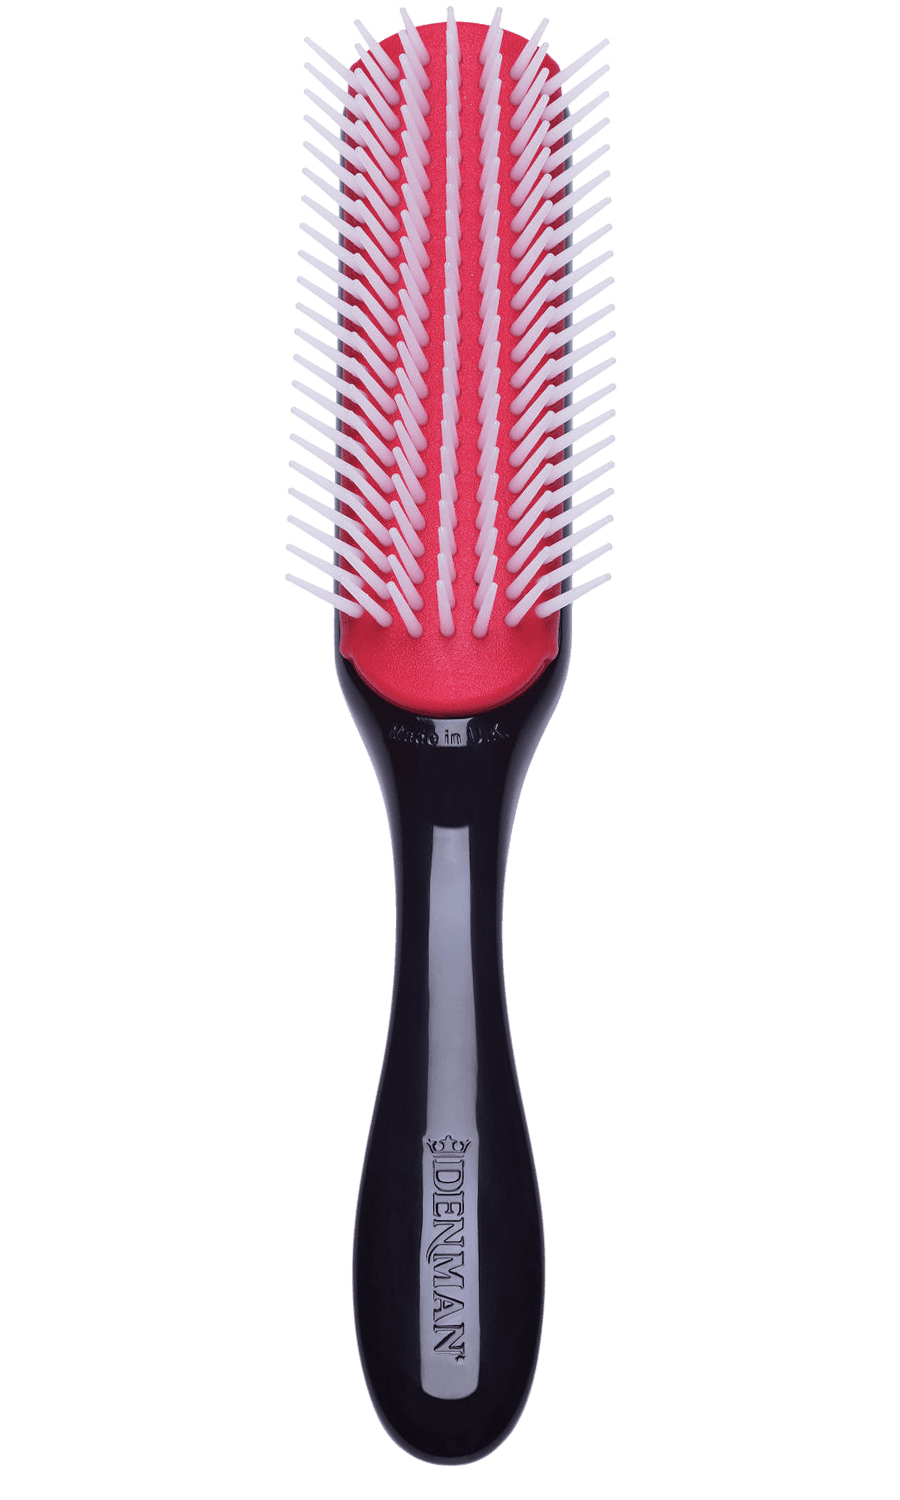 <p>The <span>Denman D14 Mini Styler Brush</span> ($18) is a classic among naturals. The bristles are soft on the hair but still functional enough to detangle and smooth the hair and reduce frizz.</p>